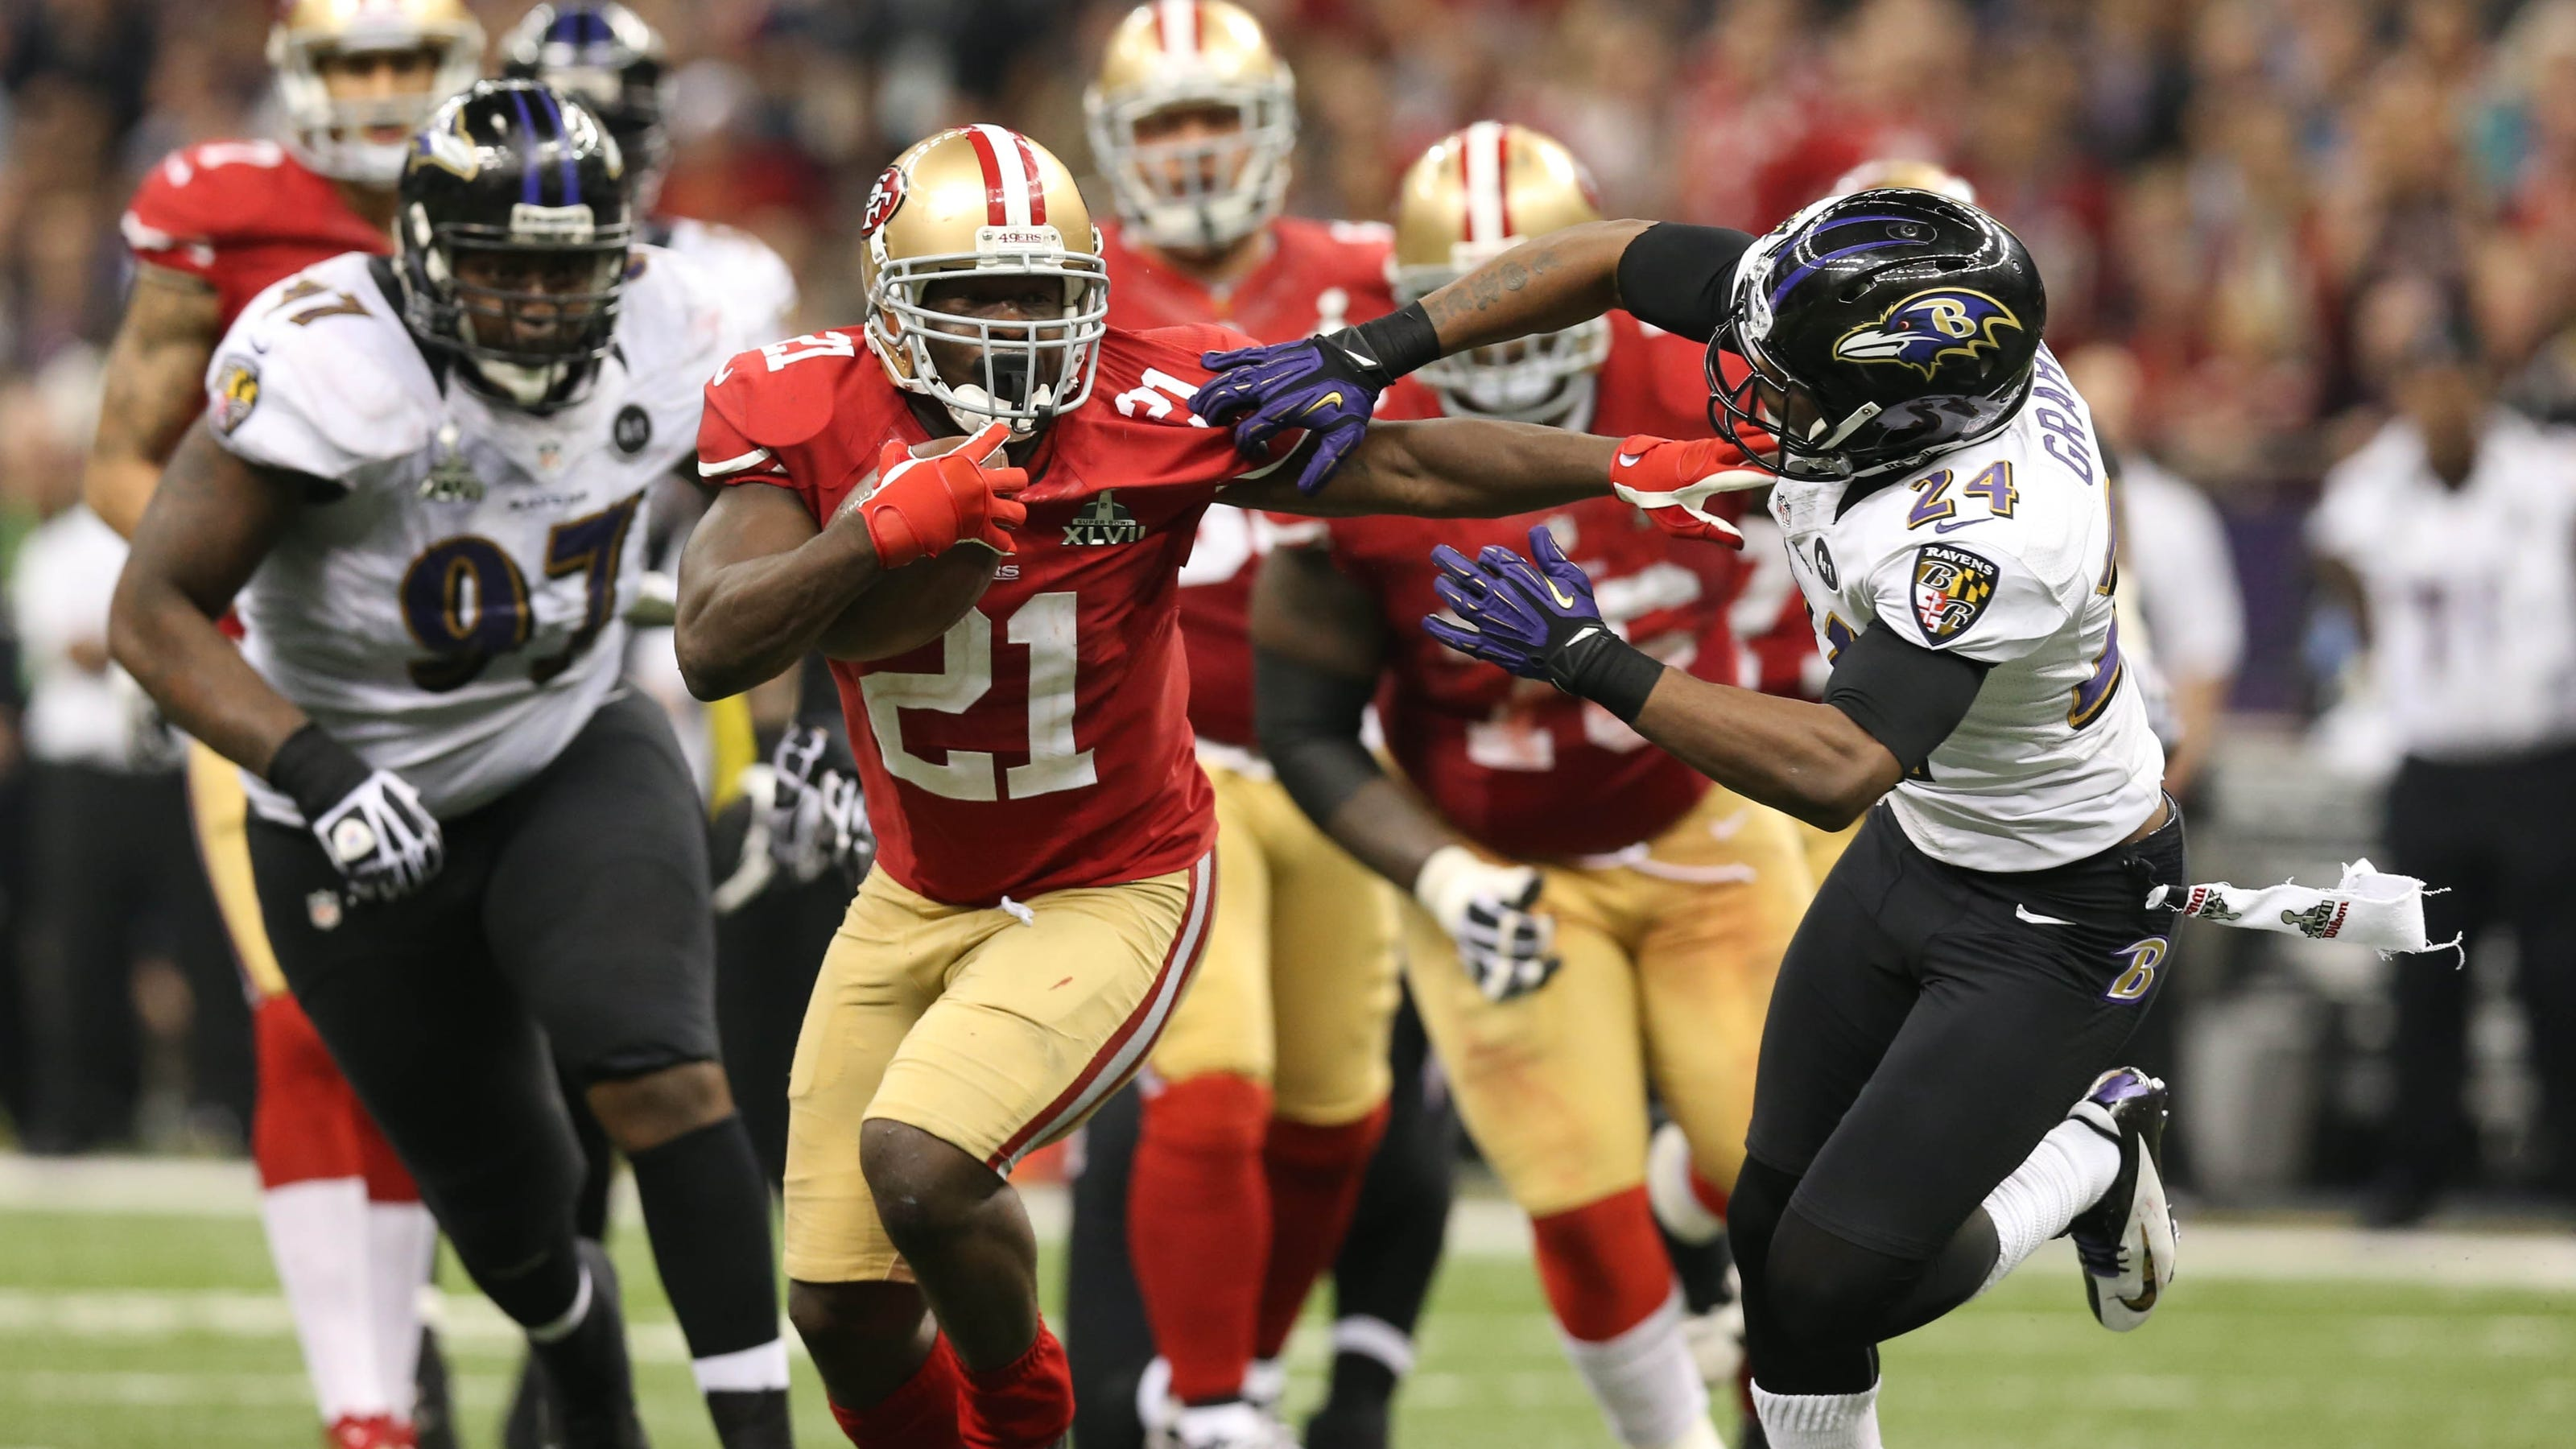 Uptodate NFL news scores standings stats photos amp videos on MSN Sports